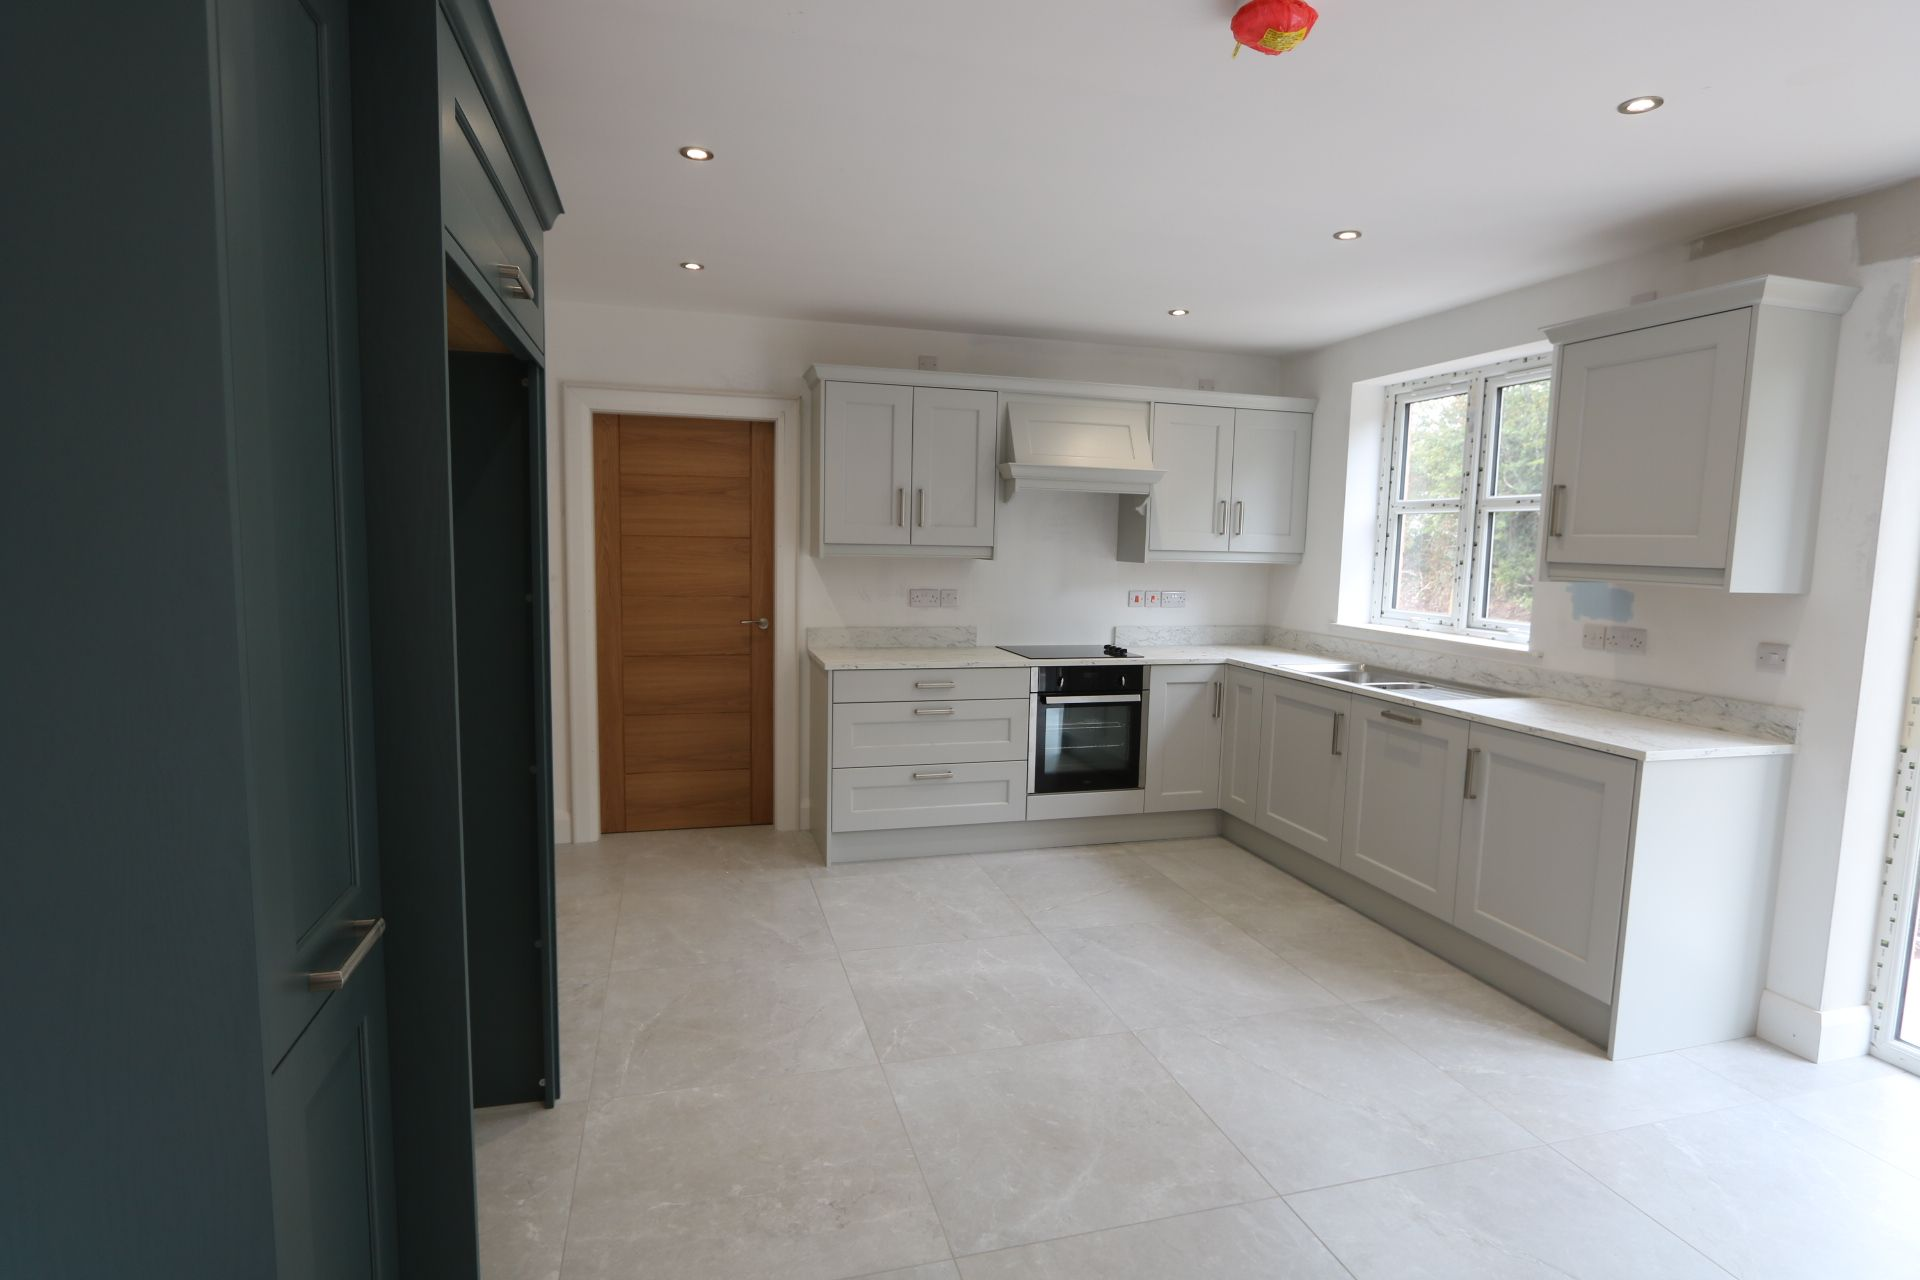 4 bedroom detached house For Sale in Antrim - Photograph 6